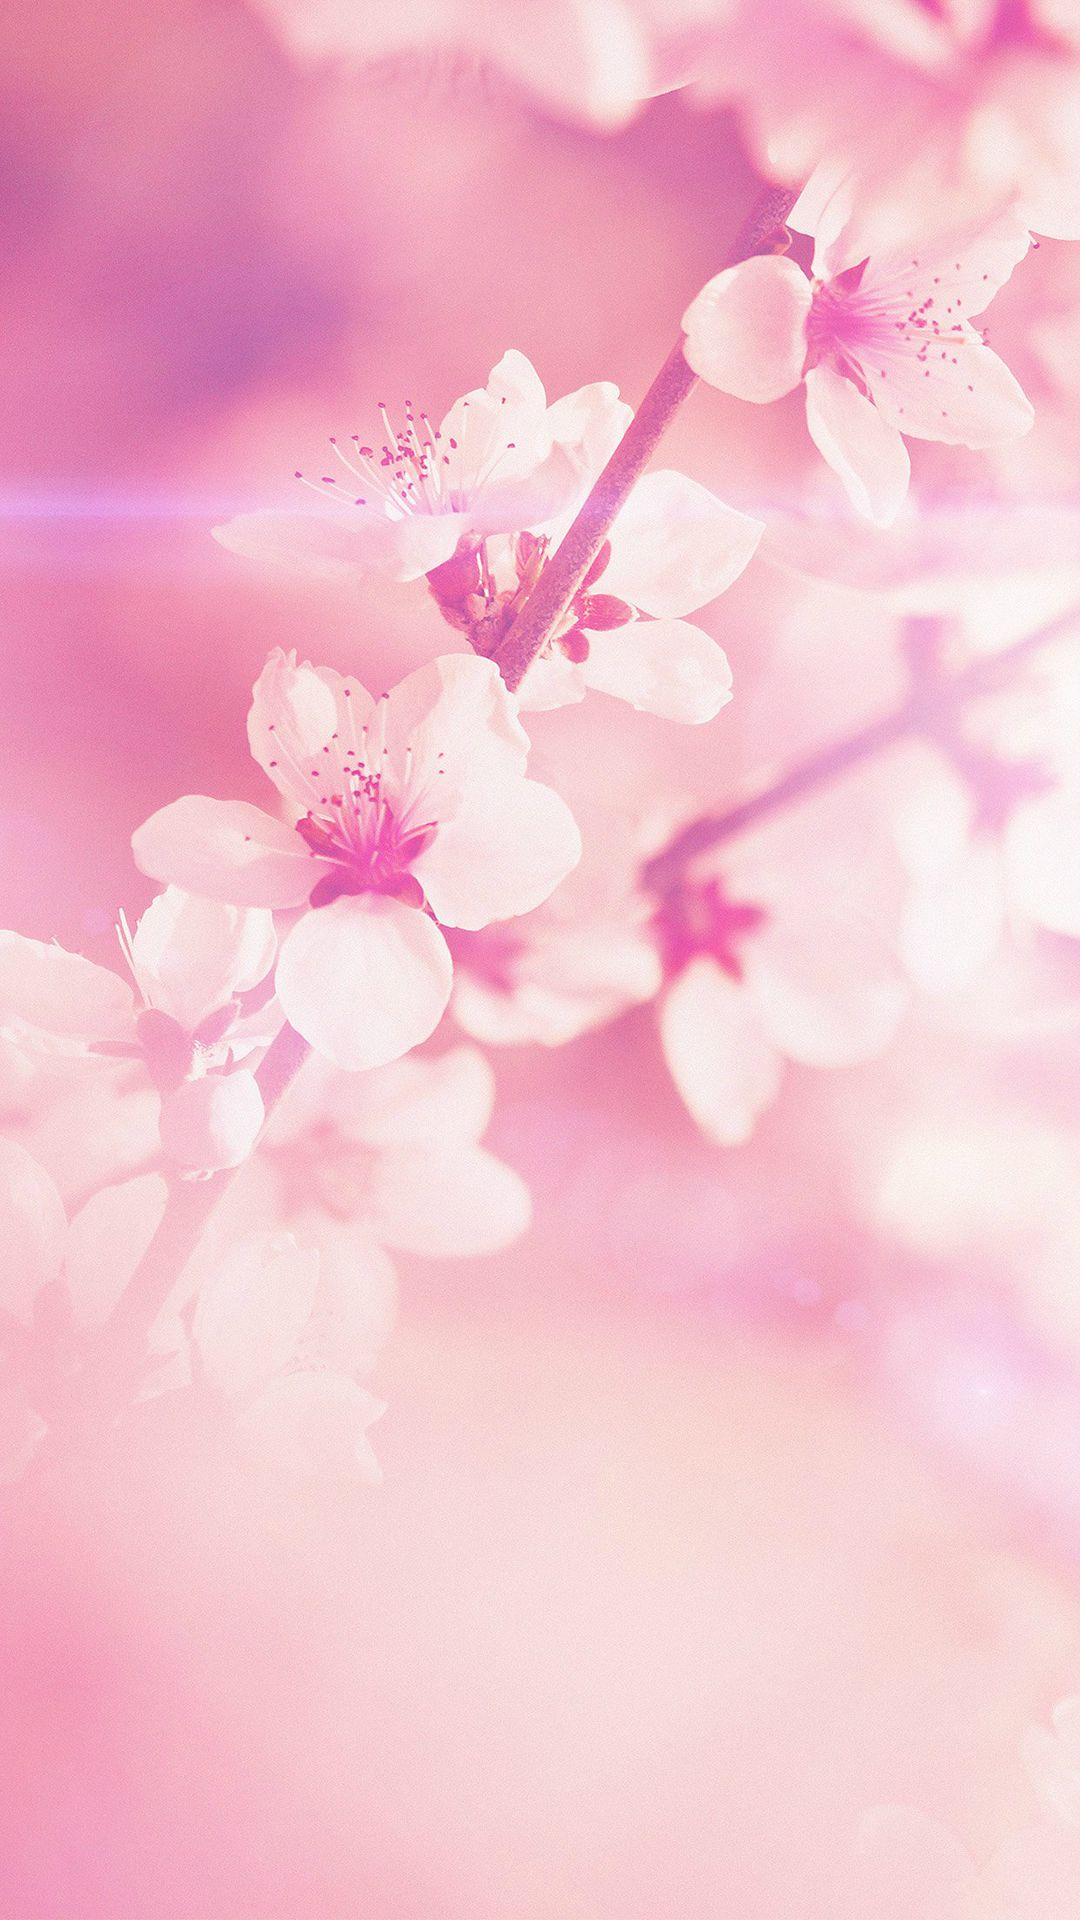 Pictures of flowers for cell phone wallpaper sazum pinterest pictures of flowers for cell phone abstract flowers photo of pretty flowers backgrounds in pink beautiful backgrounds sazum 2017 hd izmirmasajfo